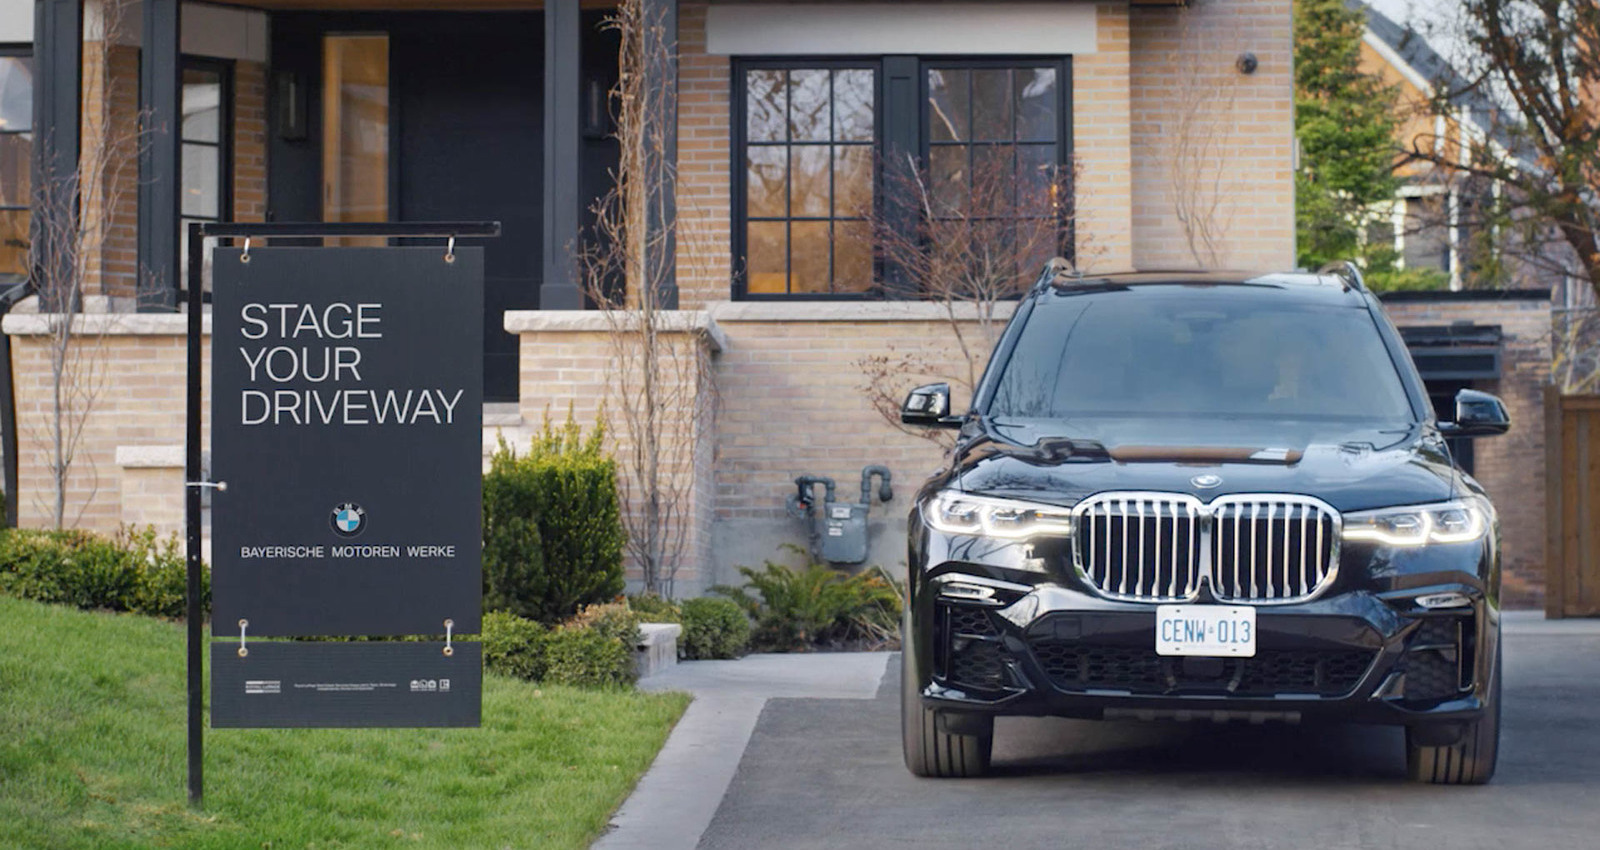 Stage Your Driveway